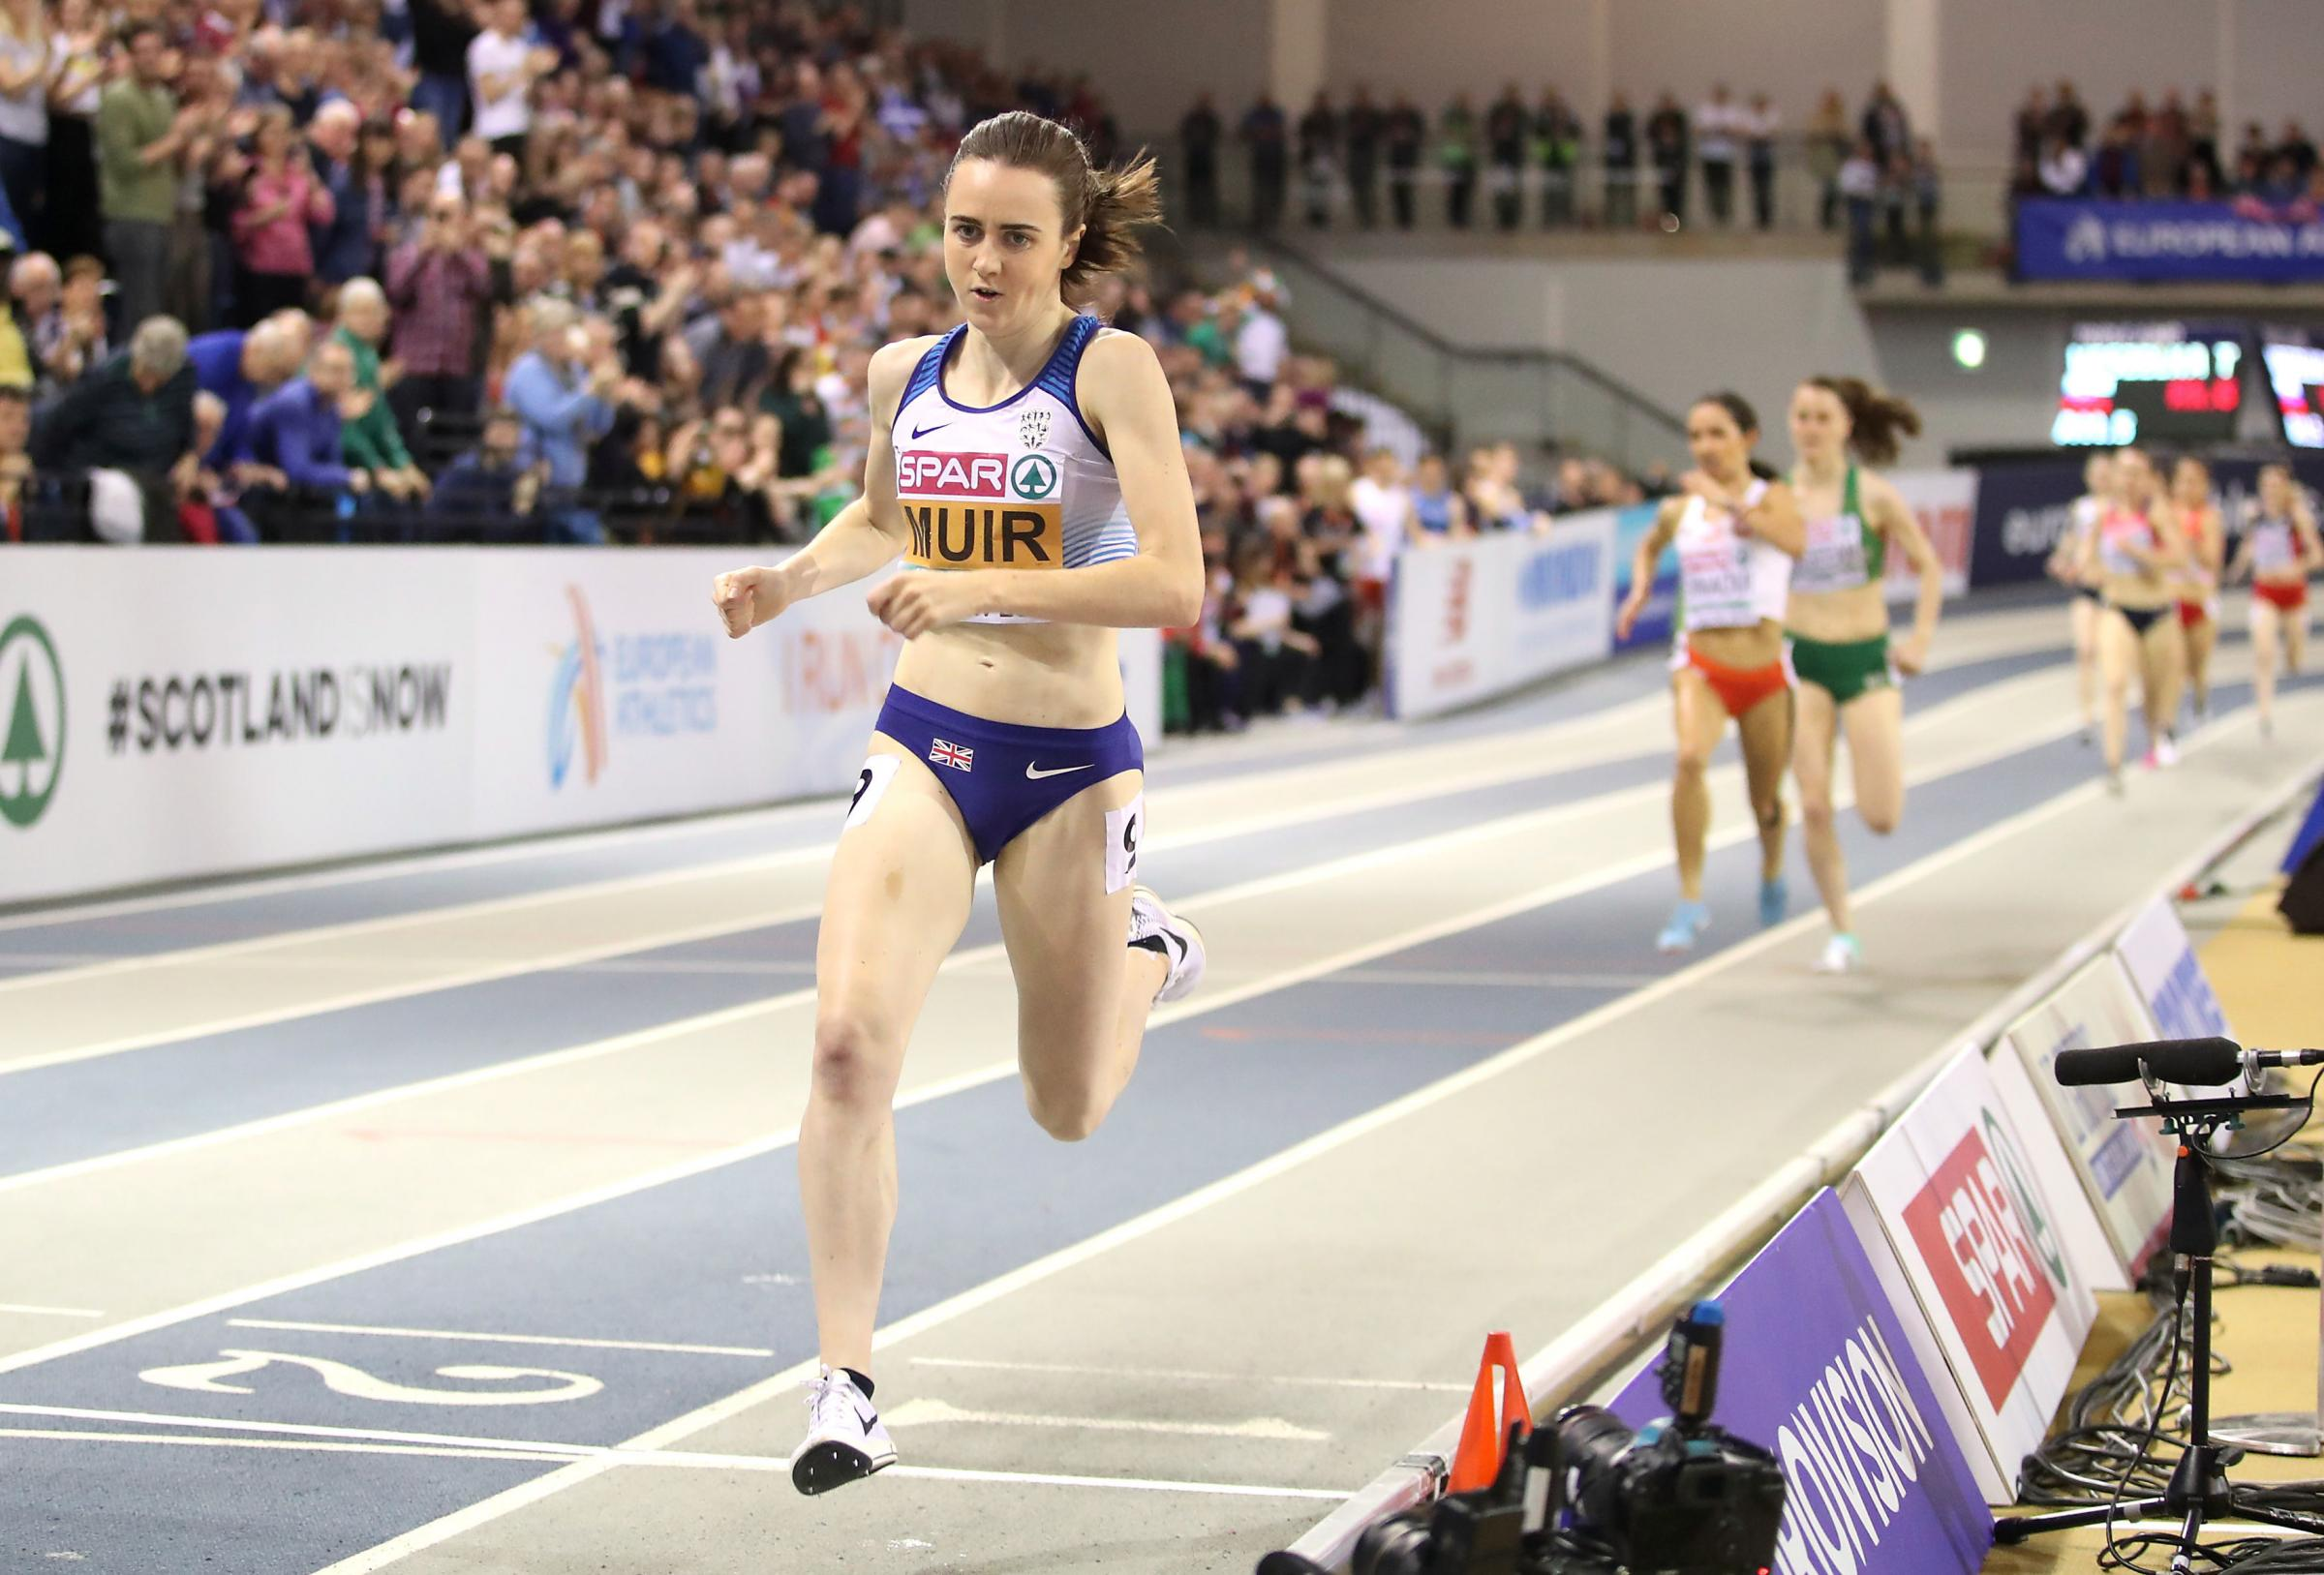 New indoor training track in Scotland 'can safeguard Laura Muir's legacy'